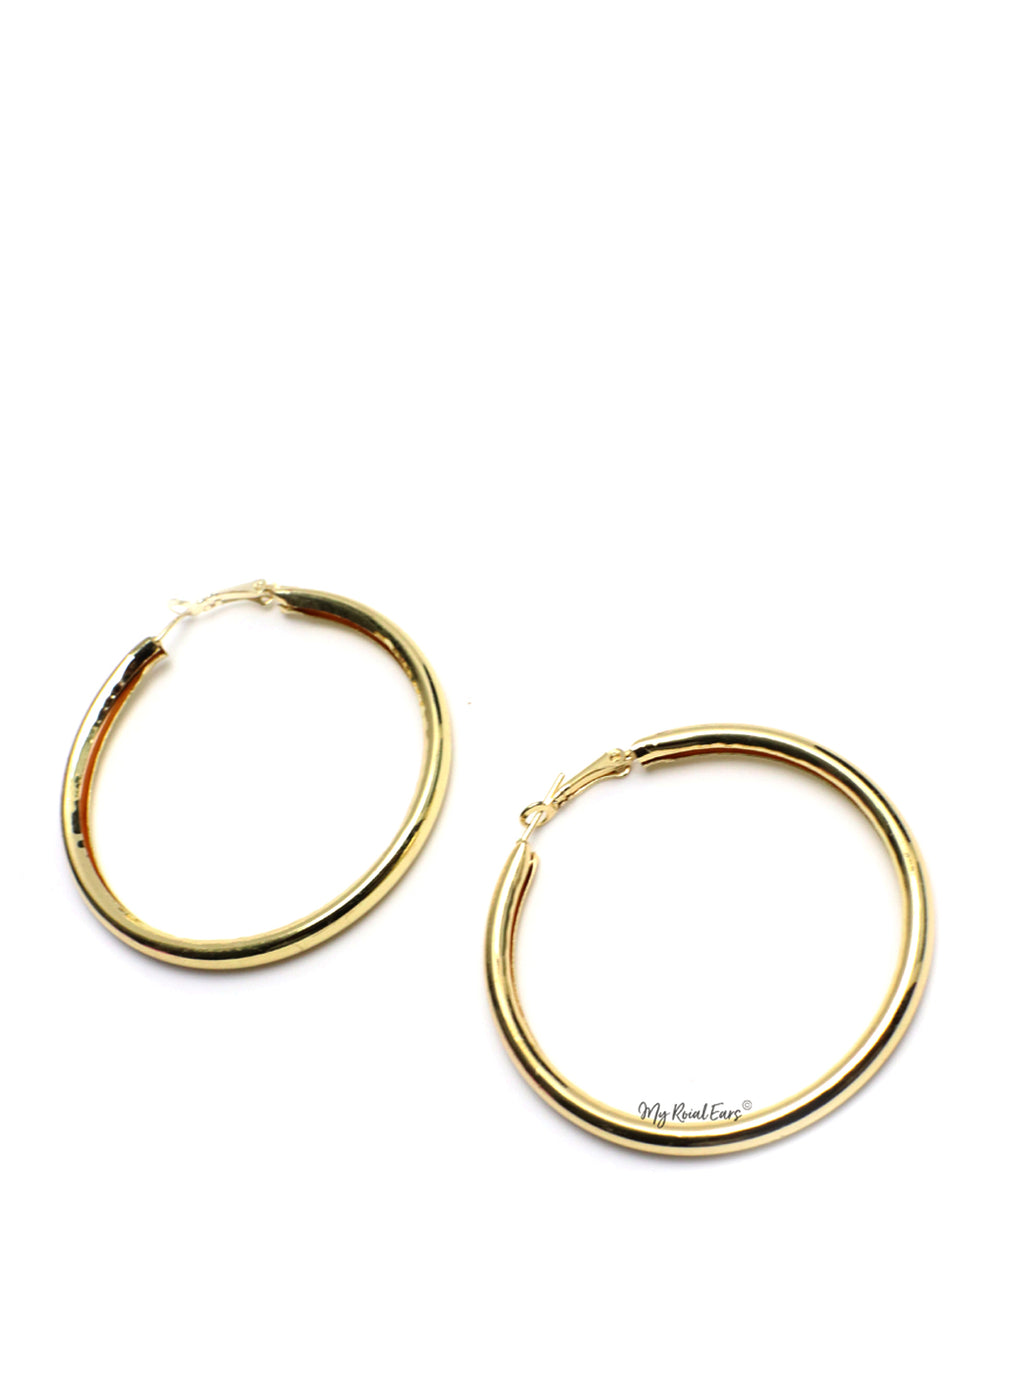 Evadne-gold hoop earrings